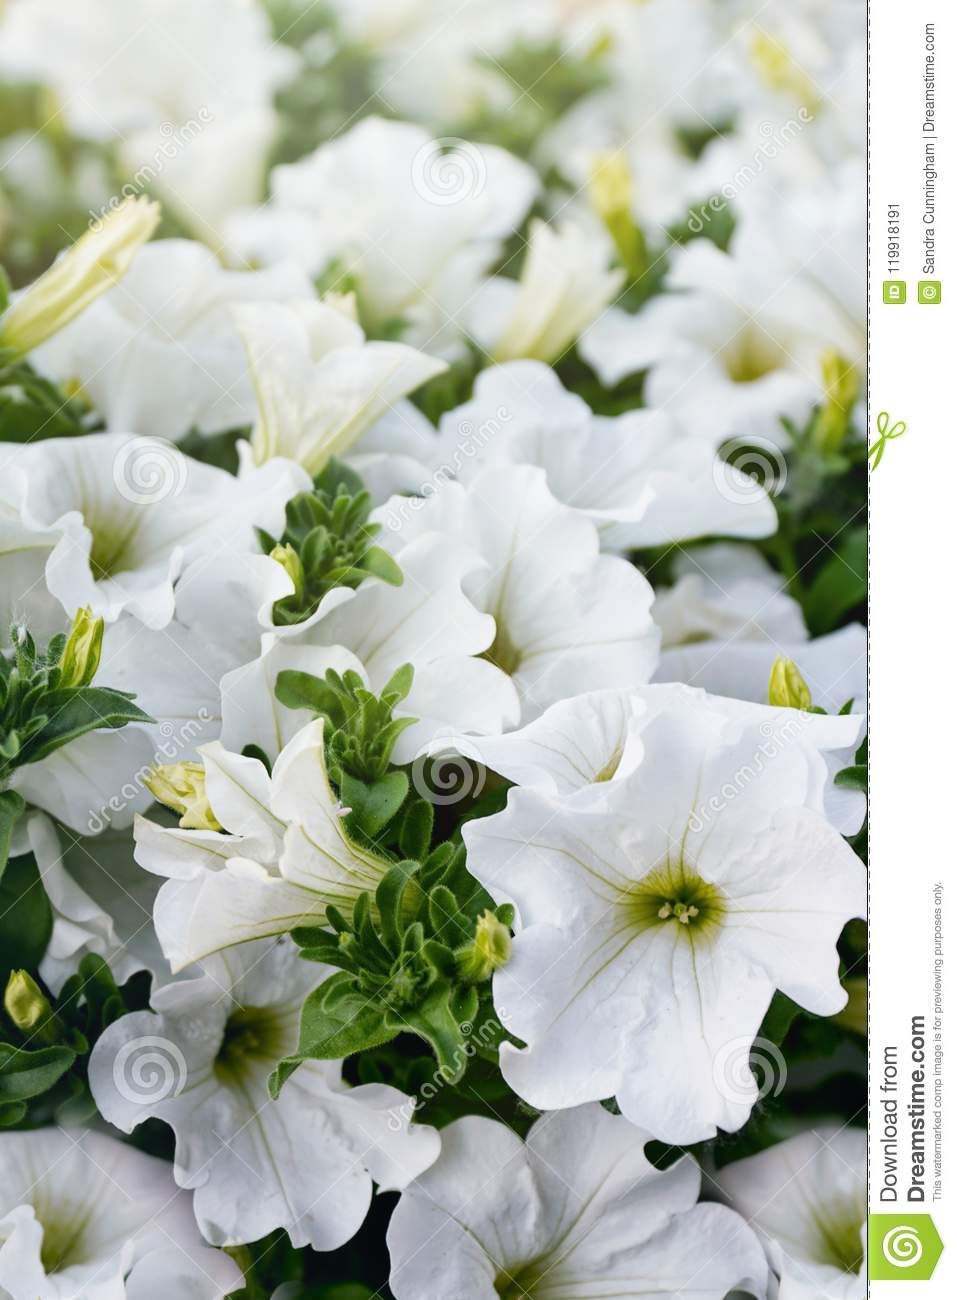 Closeup Of White Petunia Flowers In The Sun Stock Image Image Of